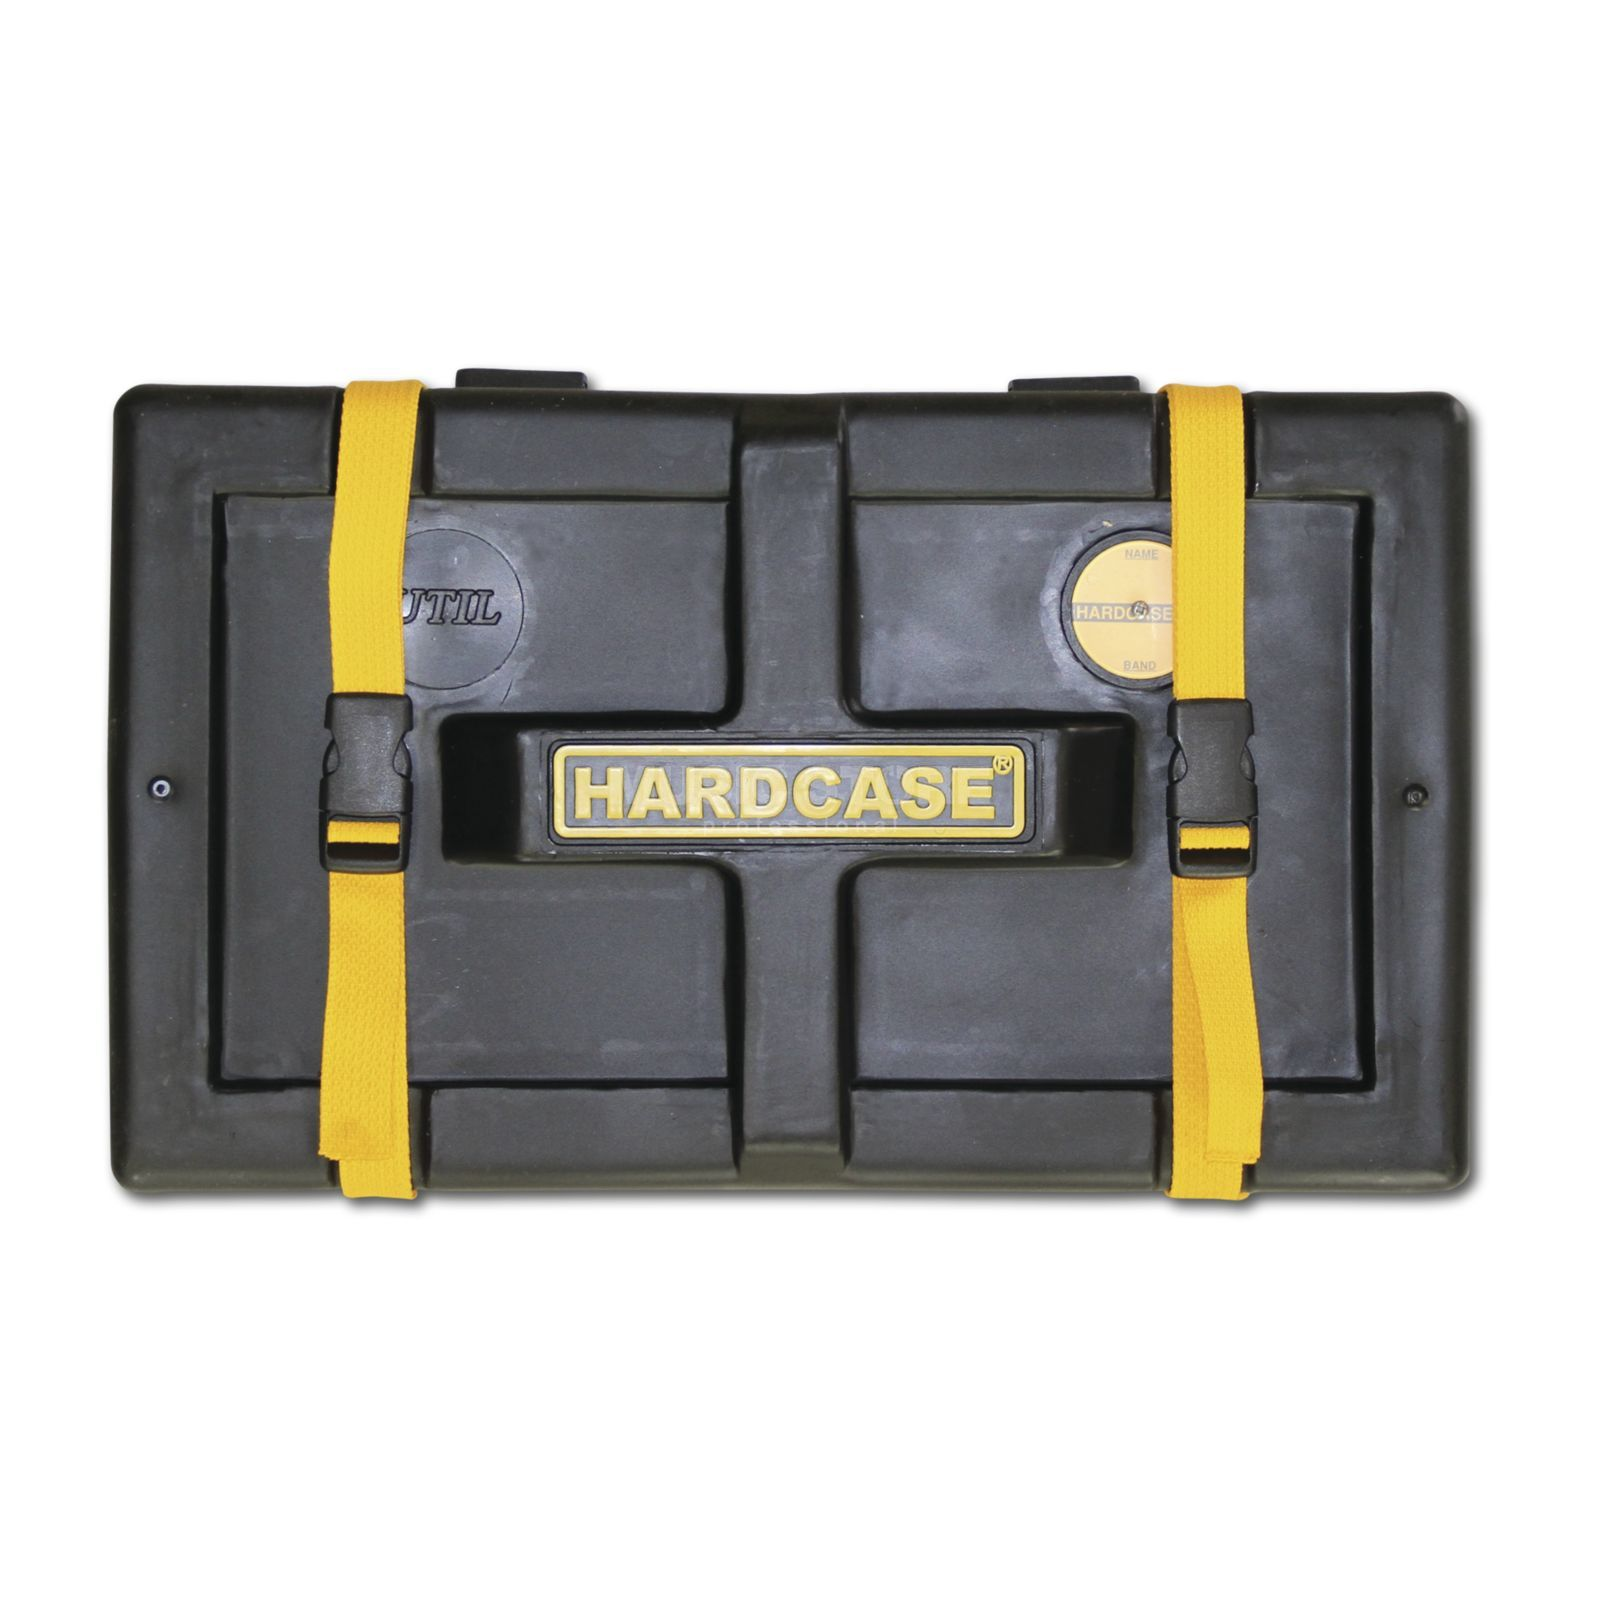 Hardcase accessoires case HNUTIL  Productafbeelding